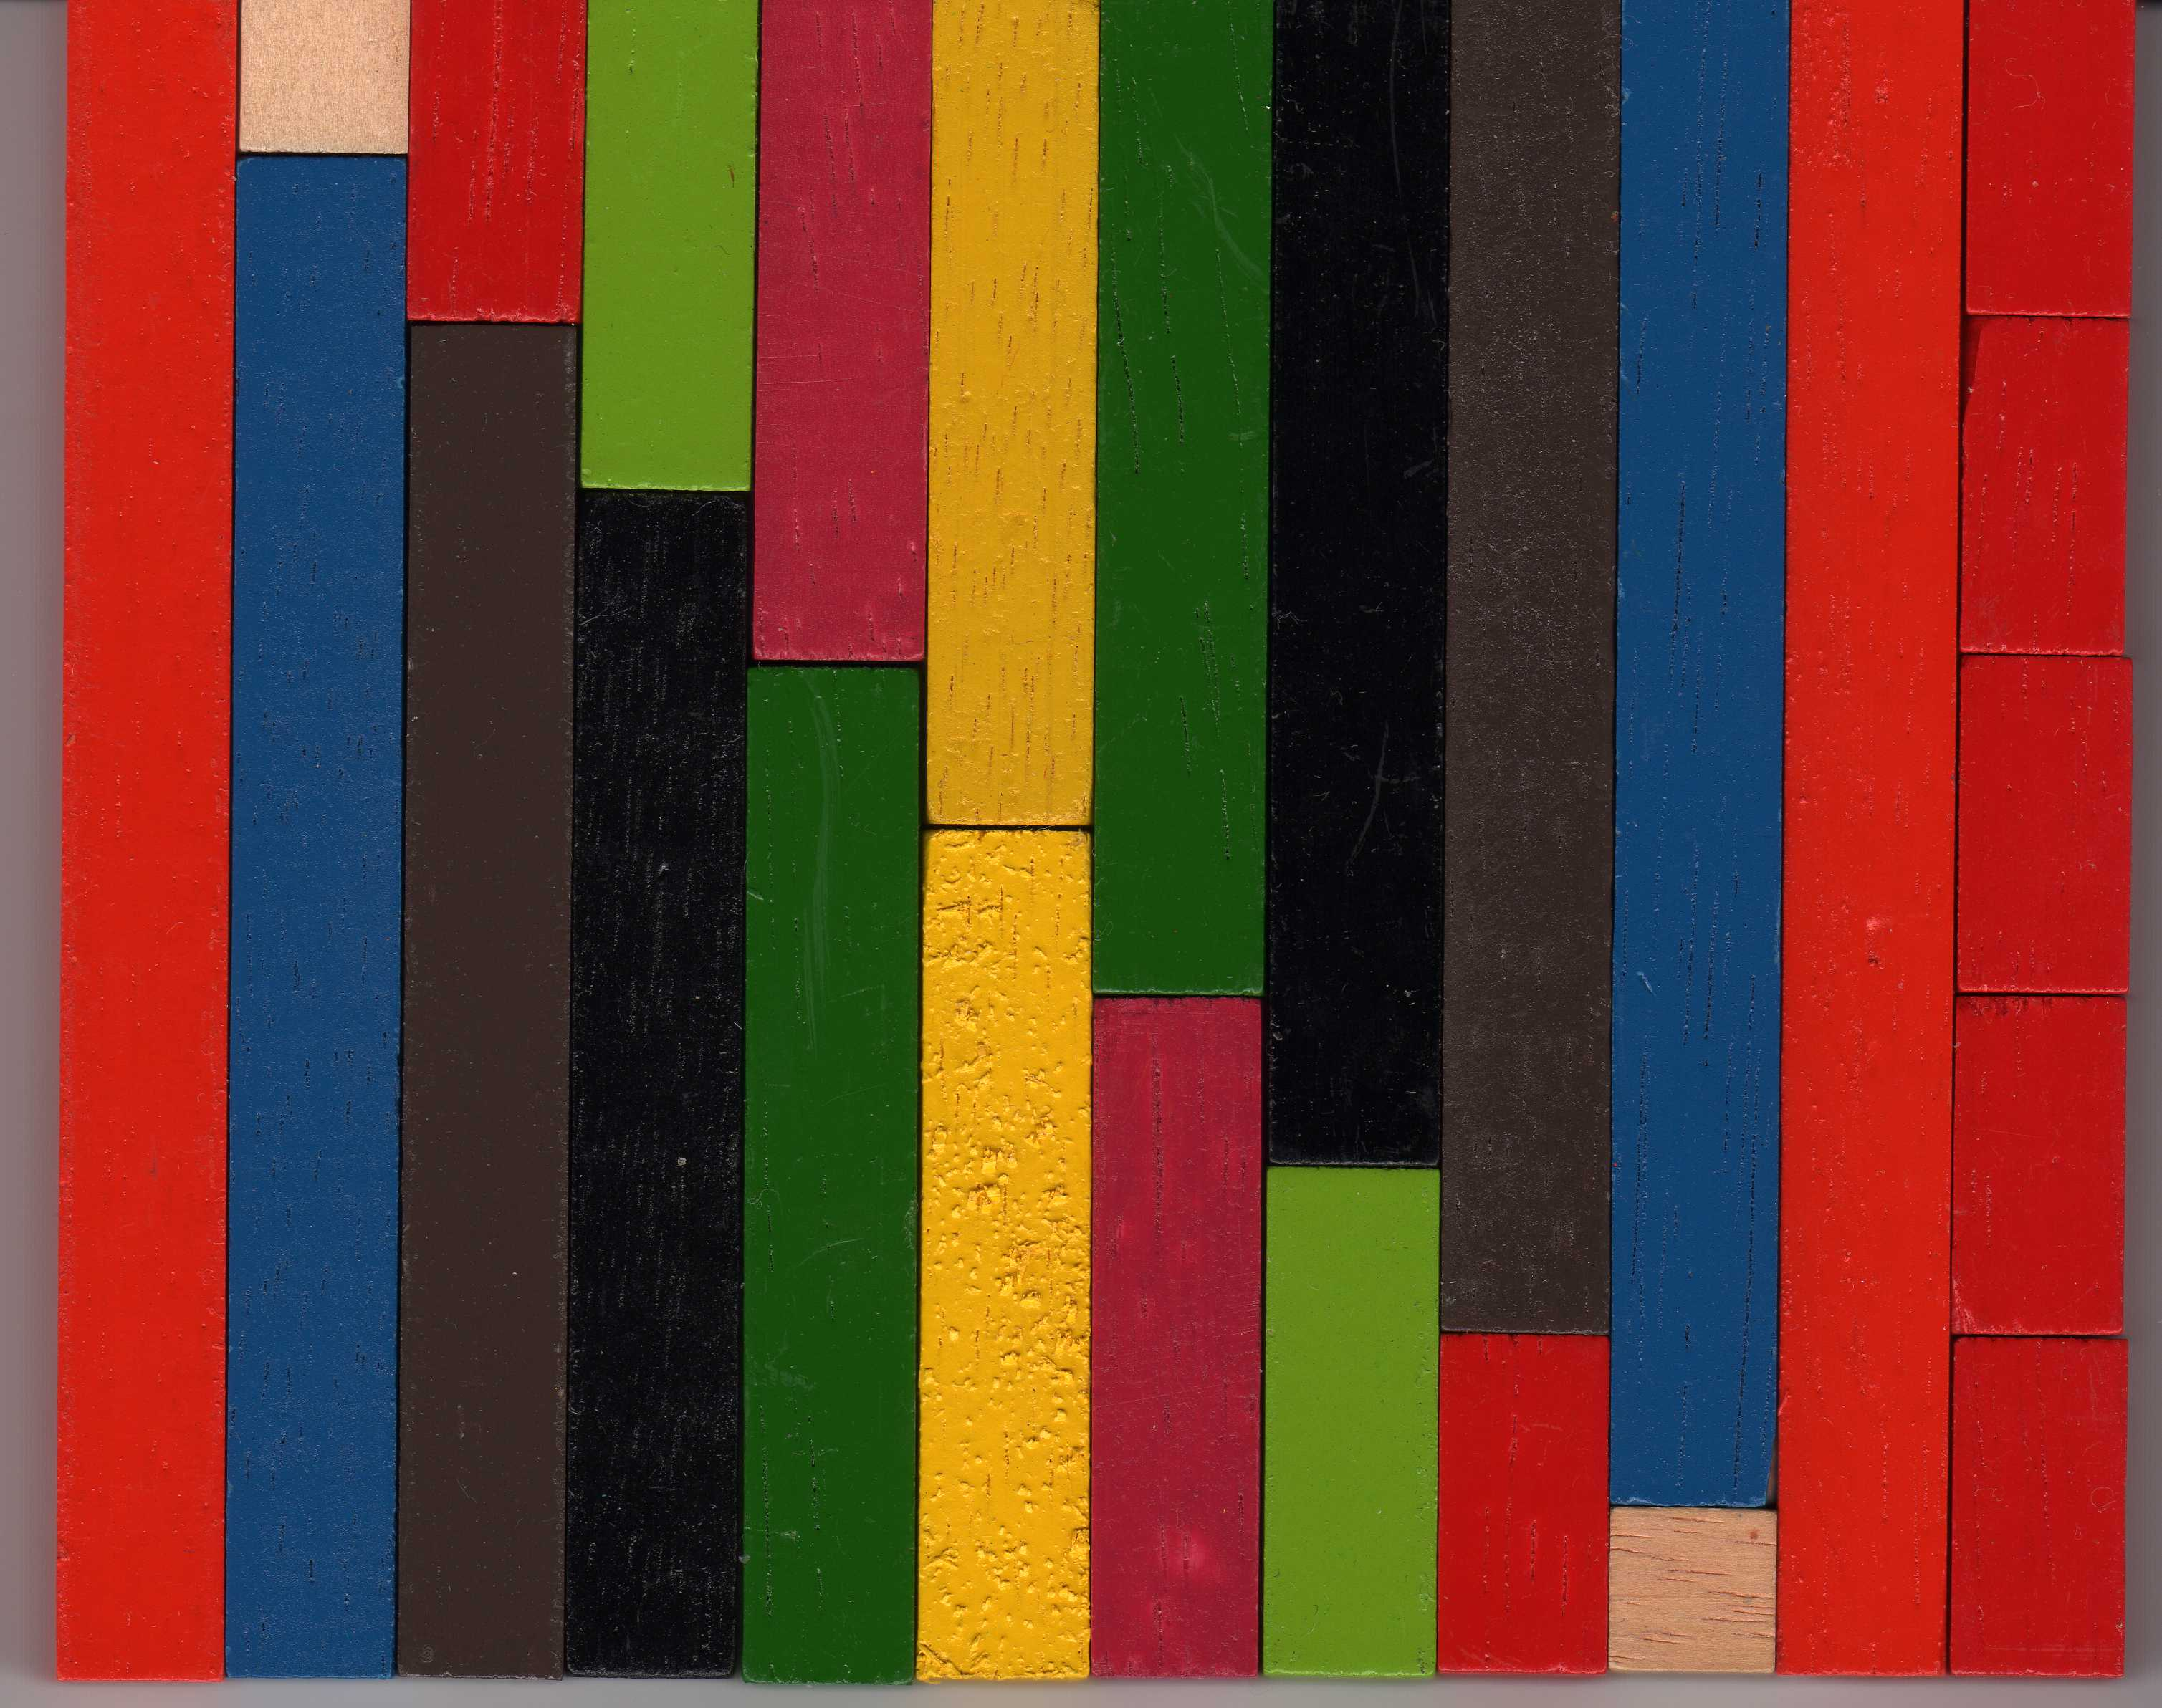 English: Cuisenaire rods